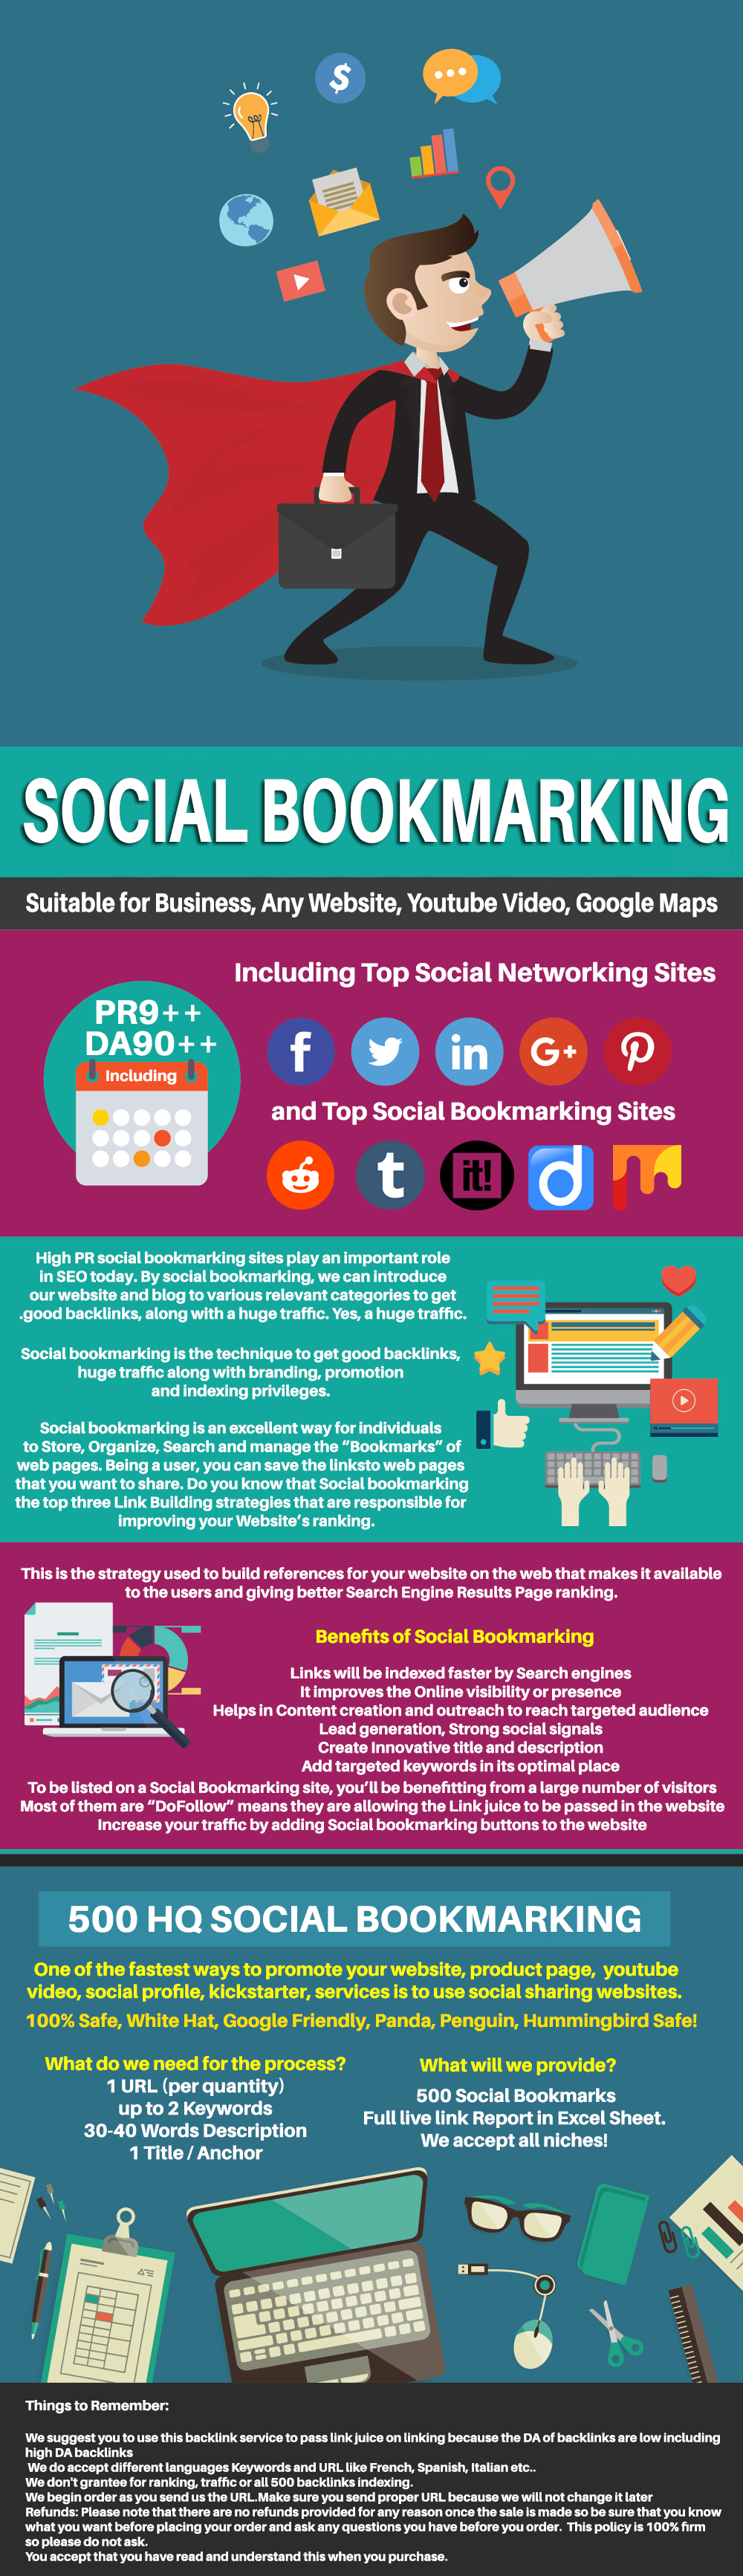 Submit Your Website, Youtube Video, Product Page, Services to 500 HQ Social  Bookmarking Sites for $2